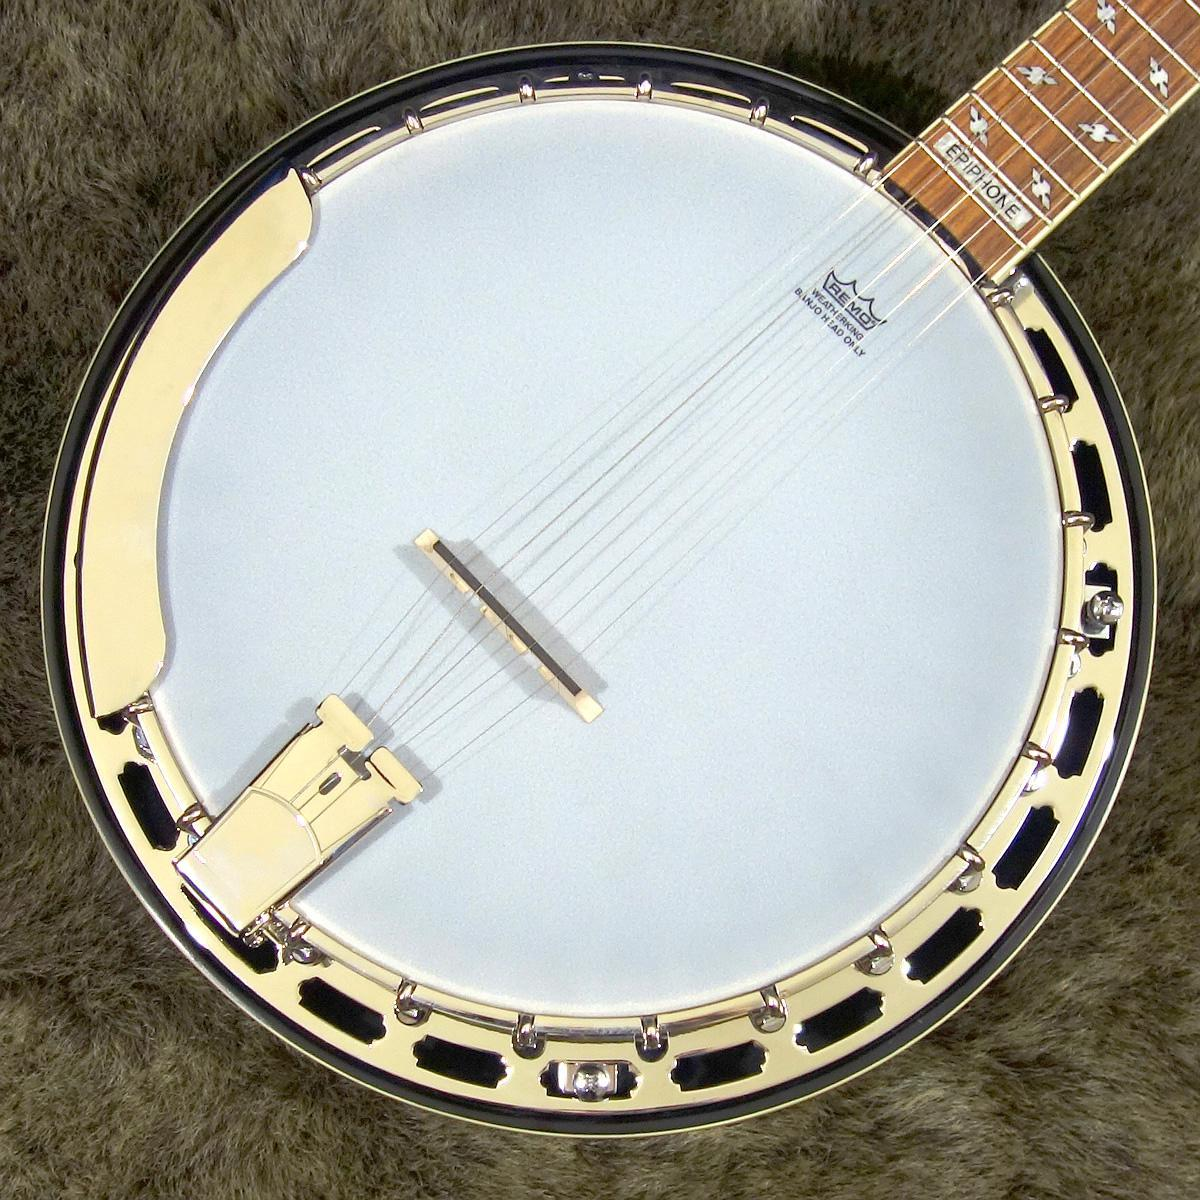 Epiphone Mayfair 5-String Banjo Mahogany